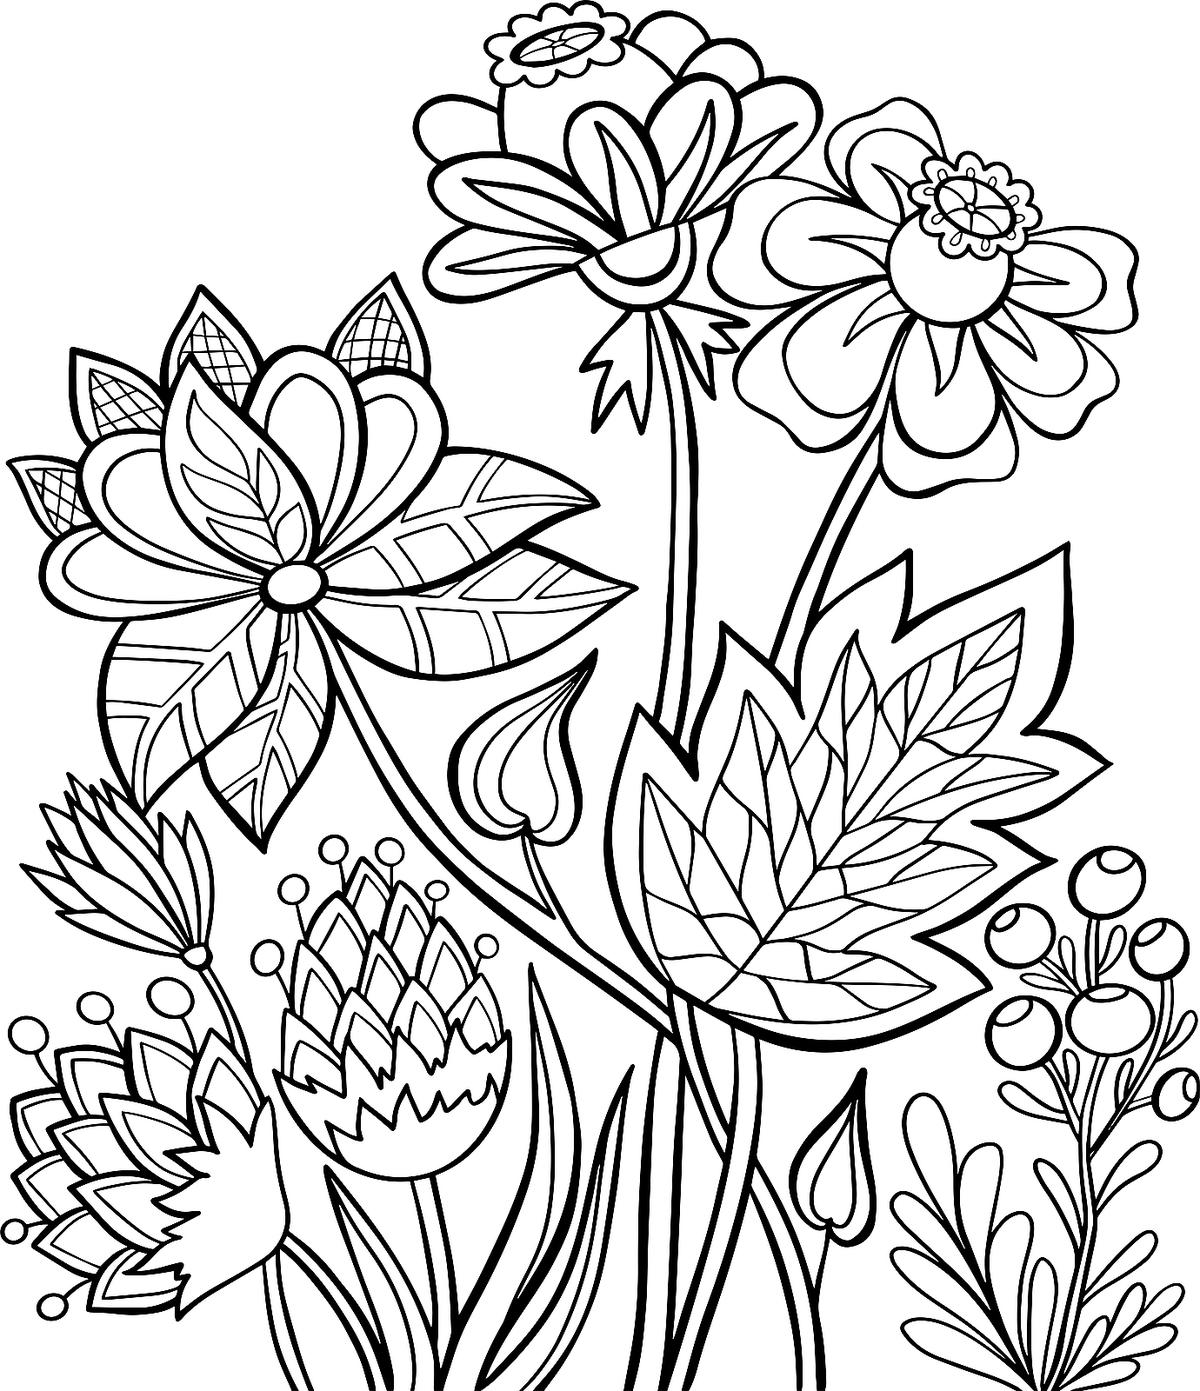 coloring pages flowers printable flowers coloring pages 10 free fun printable coloring flowers coloring pages printable